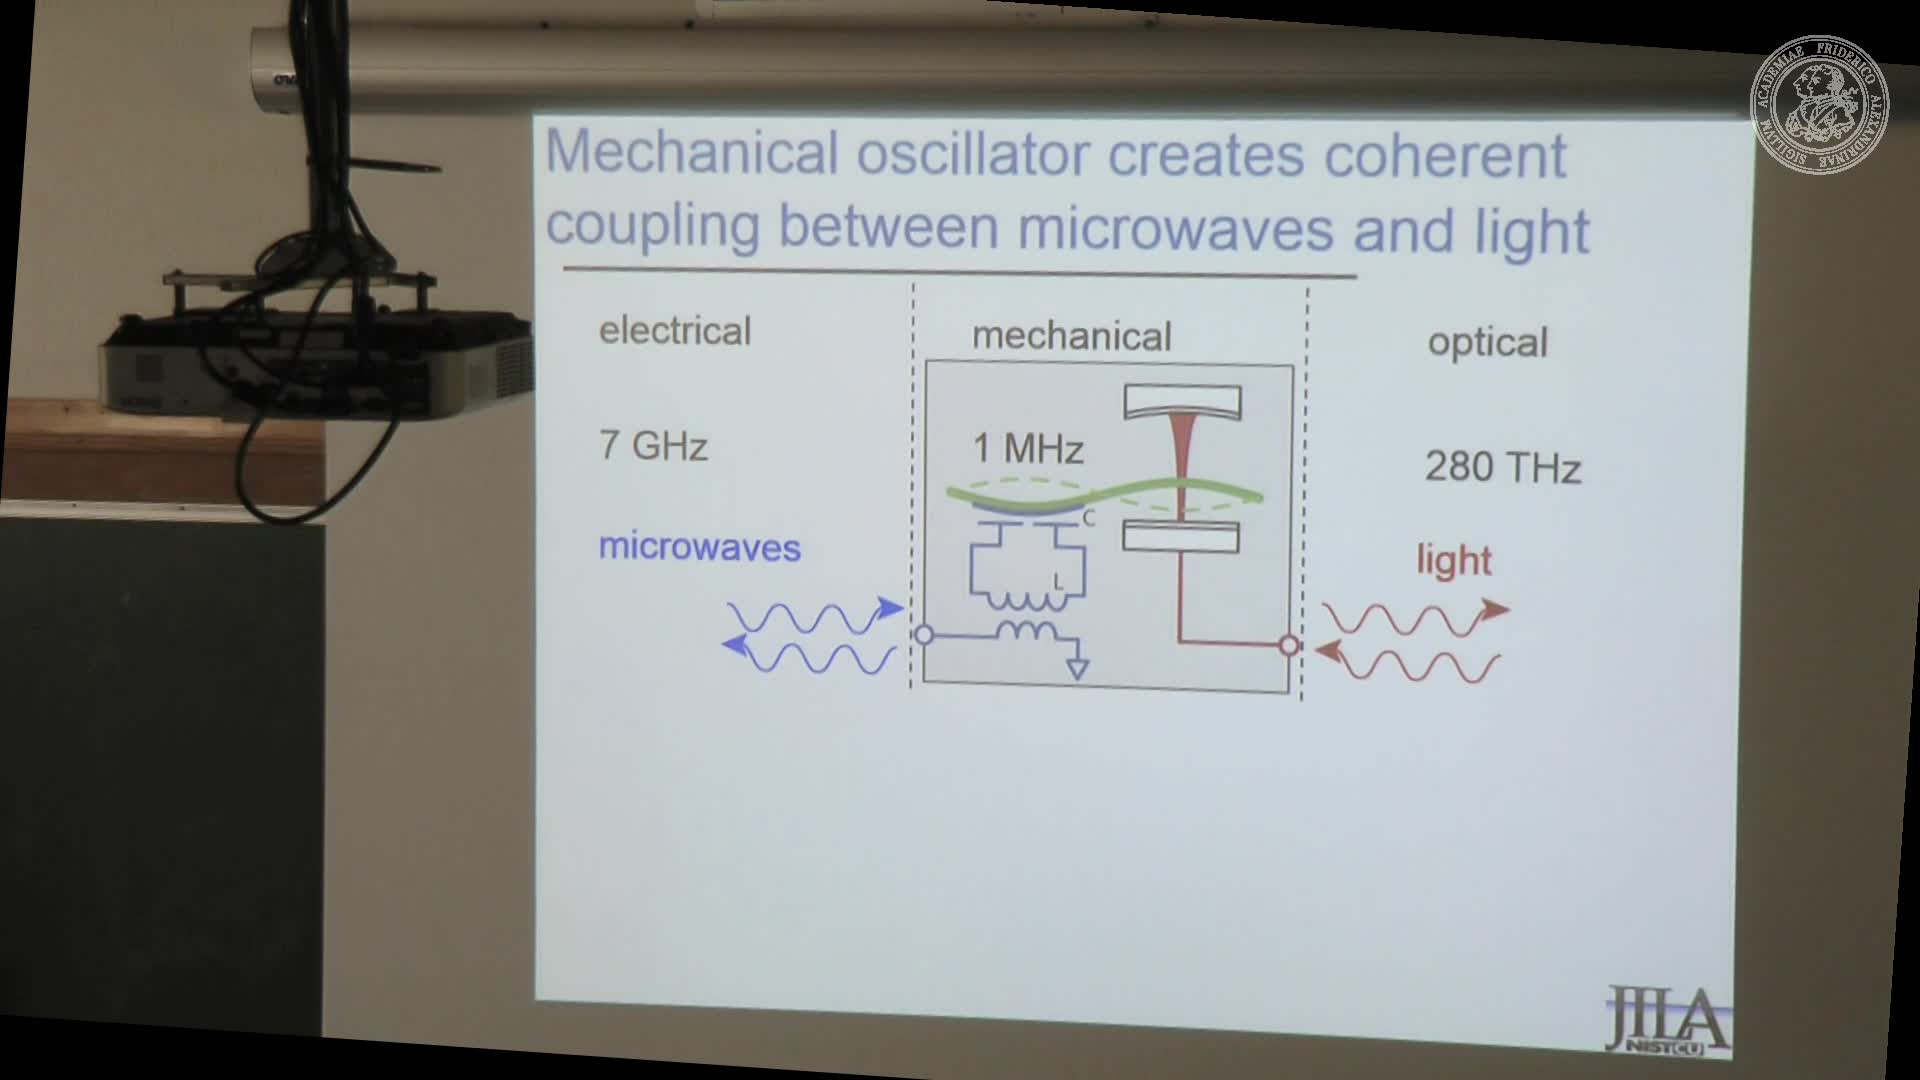 Dynamic and multimode electromechanics - 4 preview image